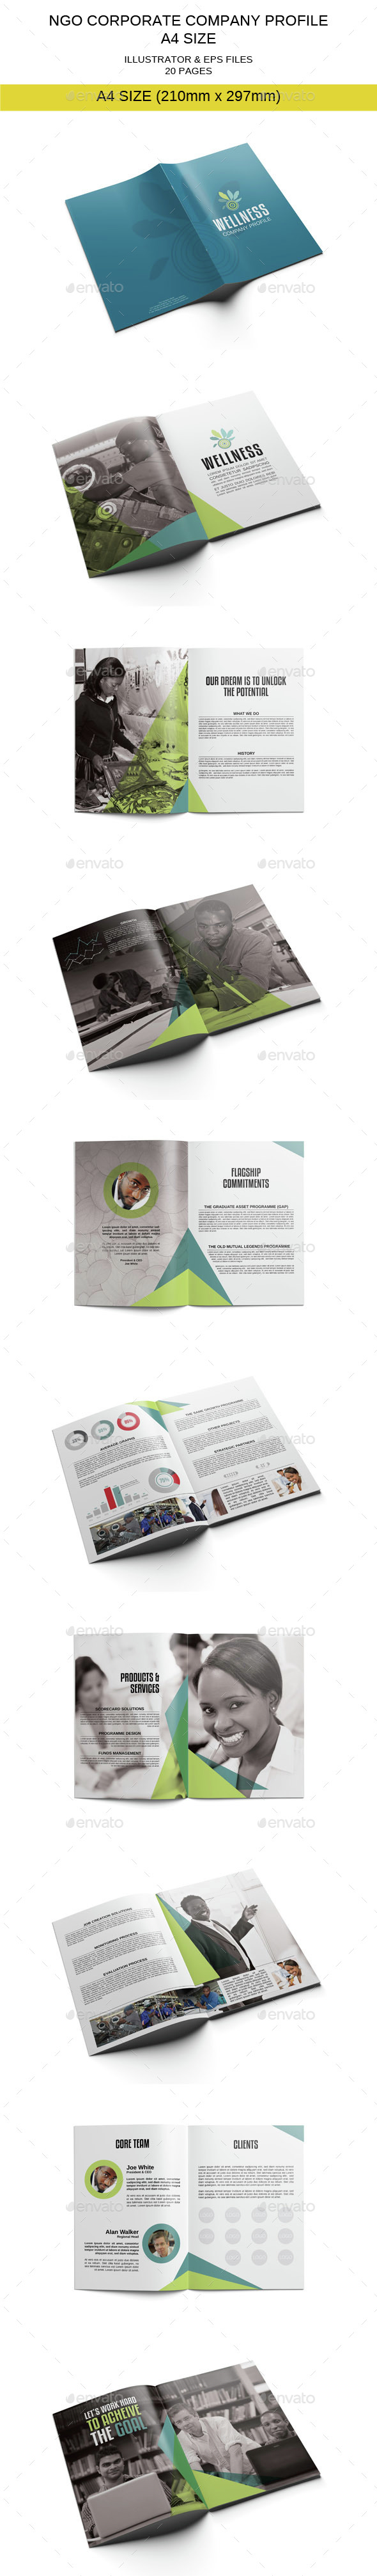 NGO Corporate Company Profile Template - Corporate Brochures